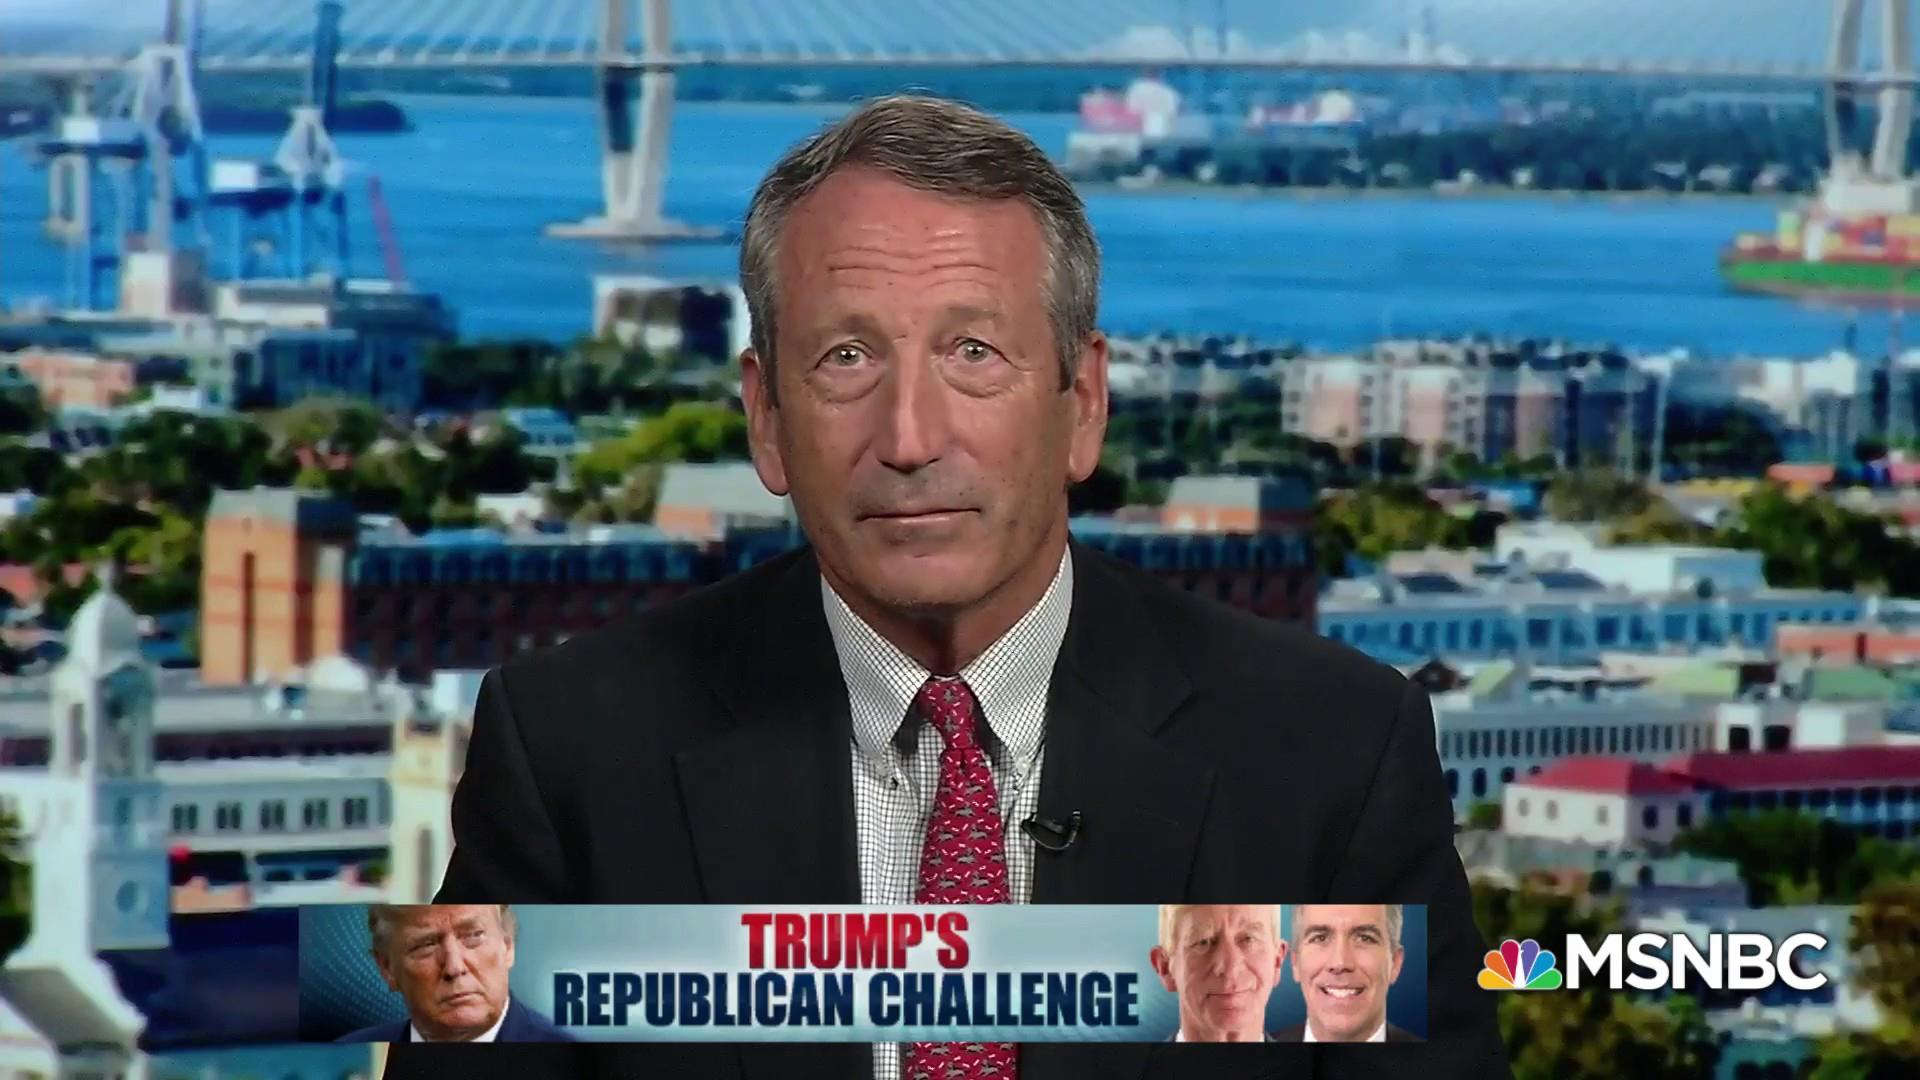 Gov. Mark Sanford: Republican Party Lost its Way